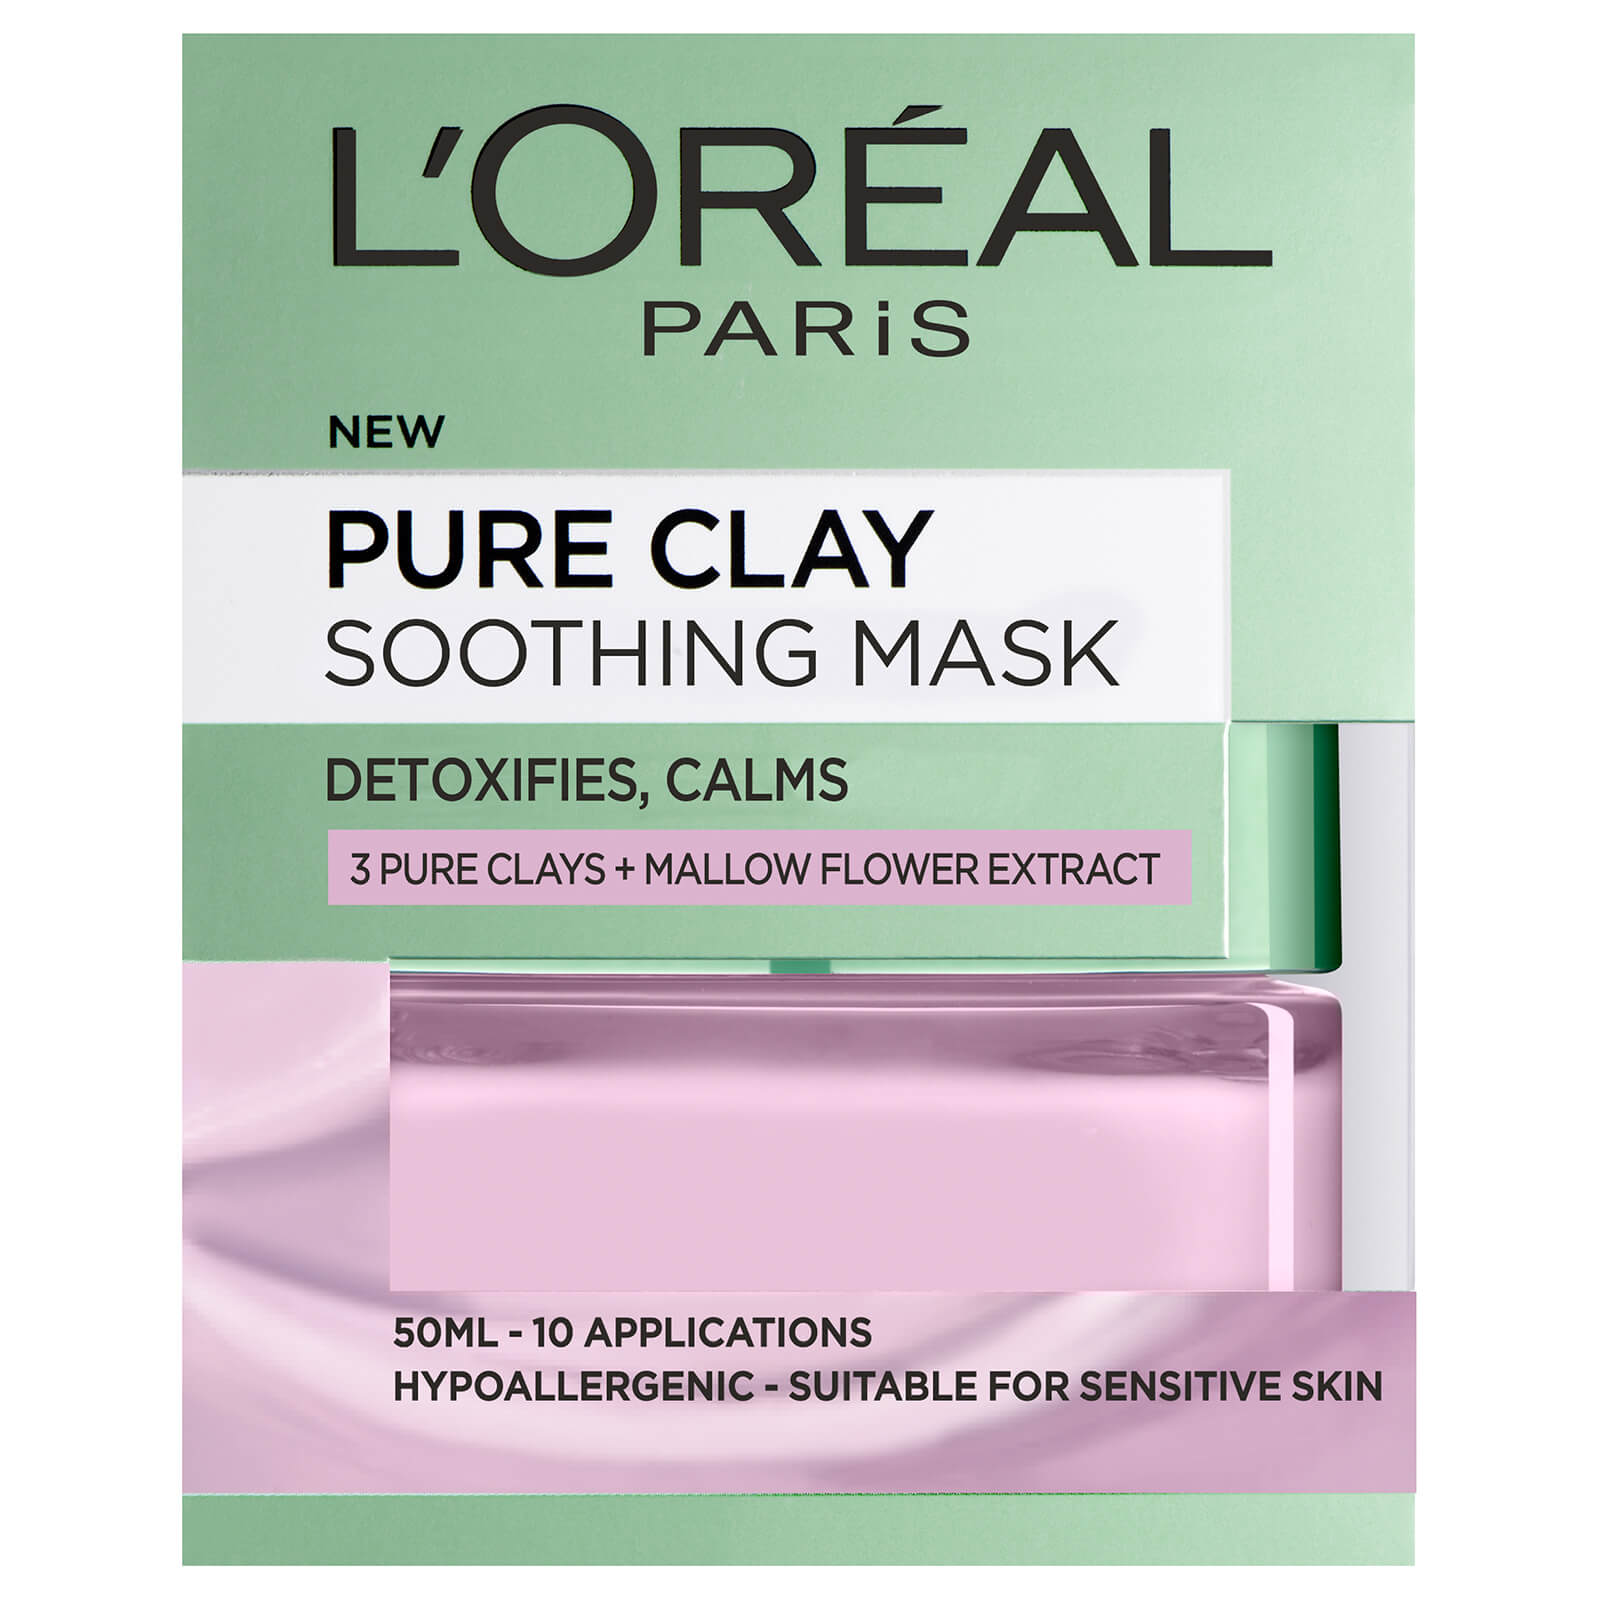 L'Oreal Paris Pure Clay Soothing Face Mask